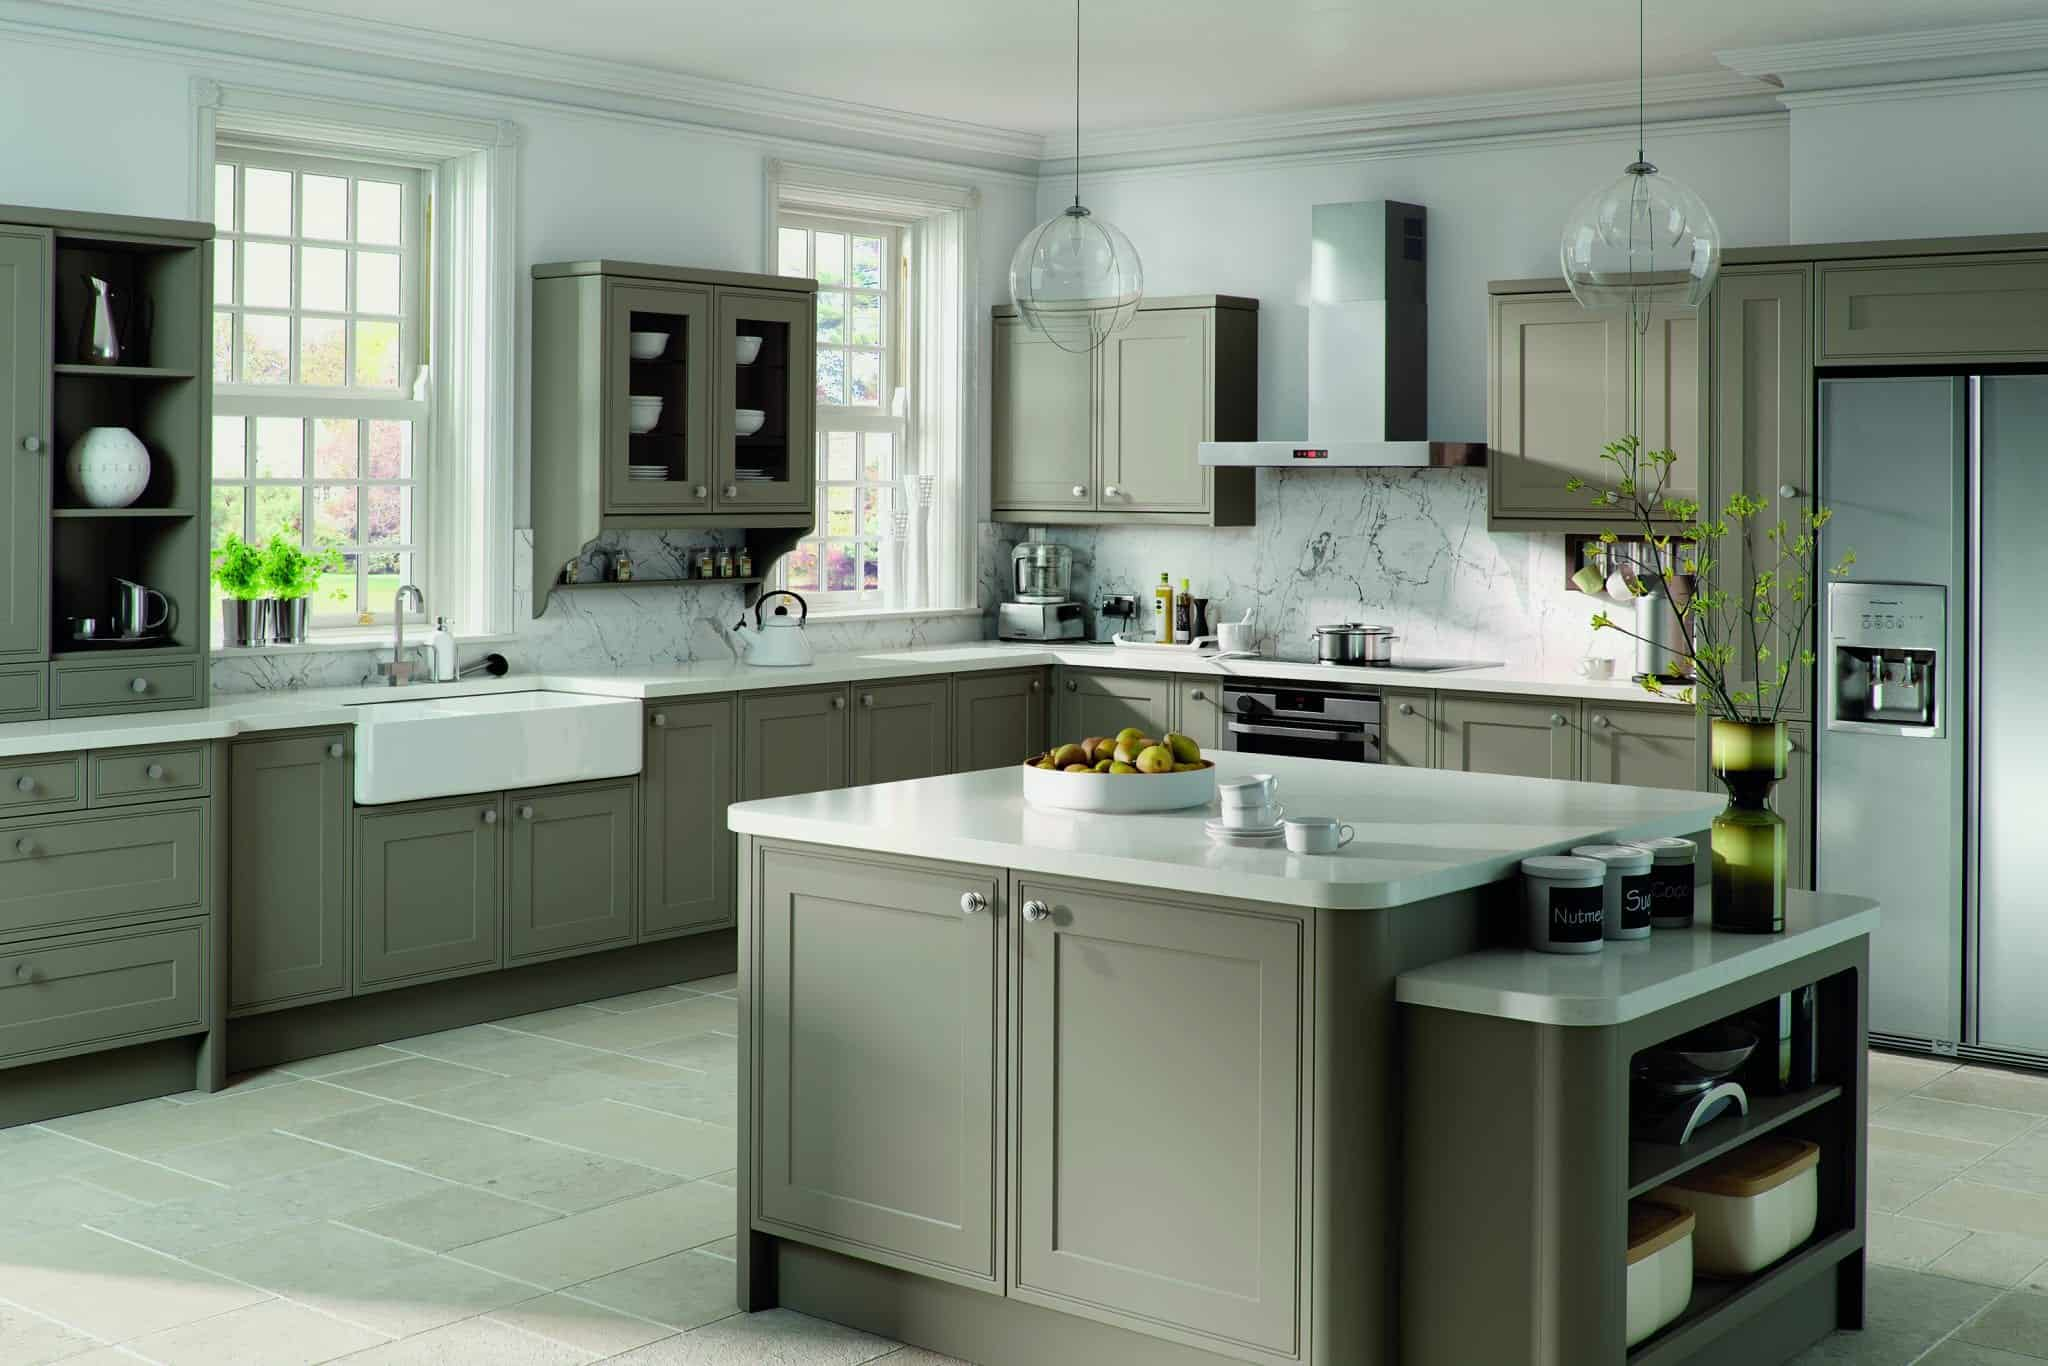 Tullymore kitchen in Stone grey